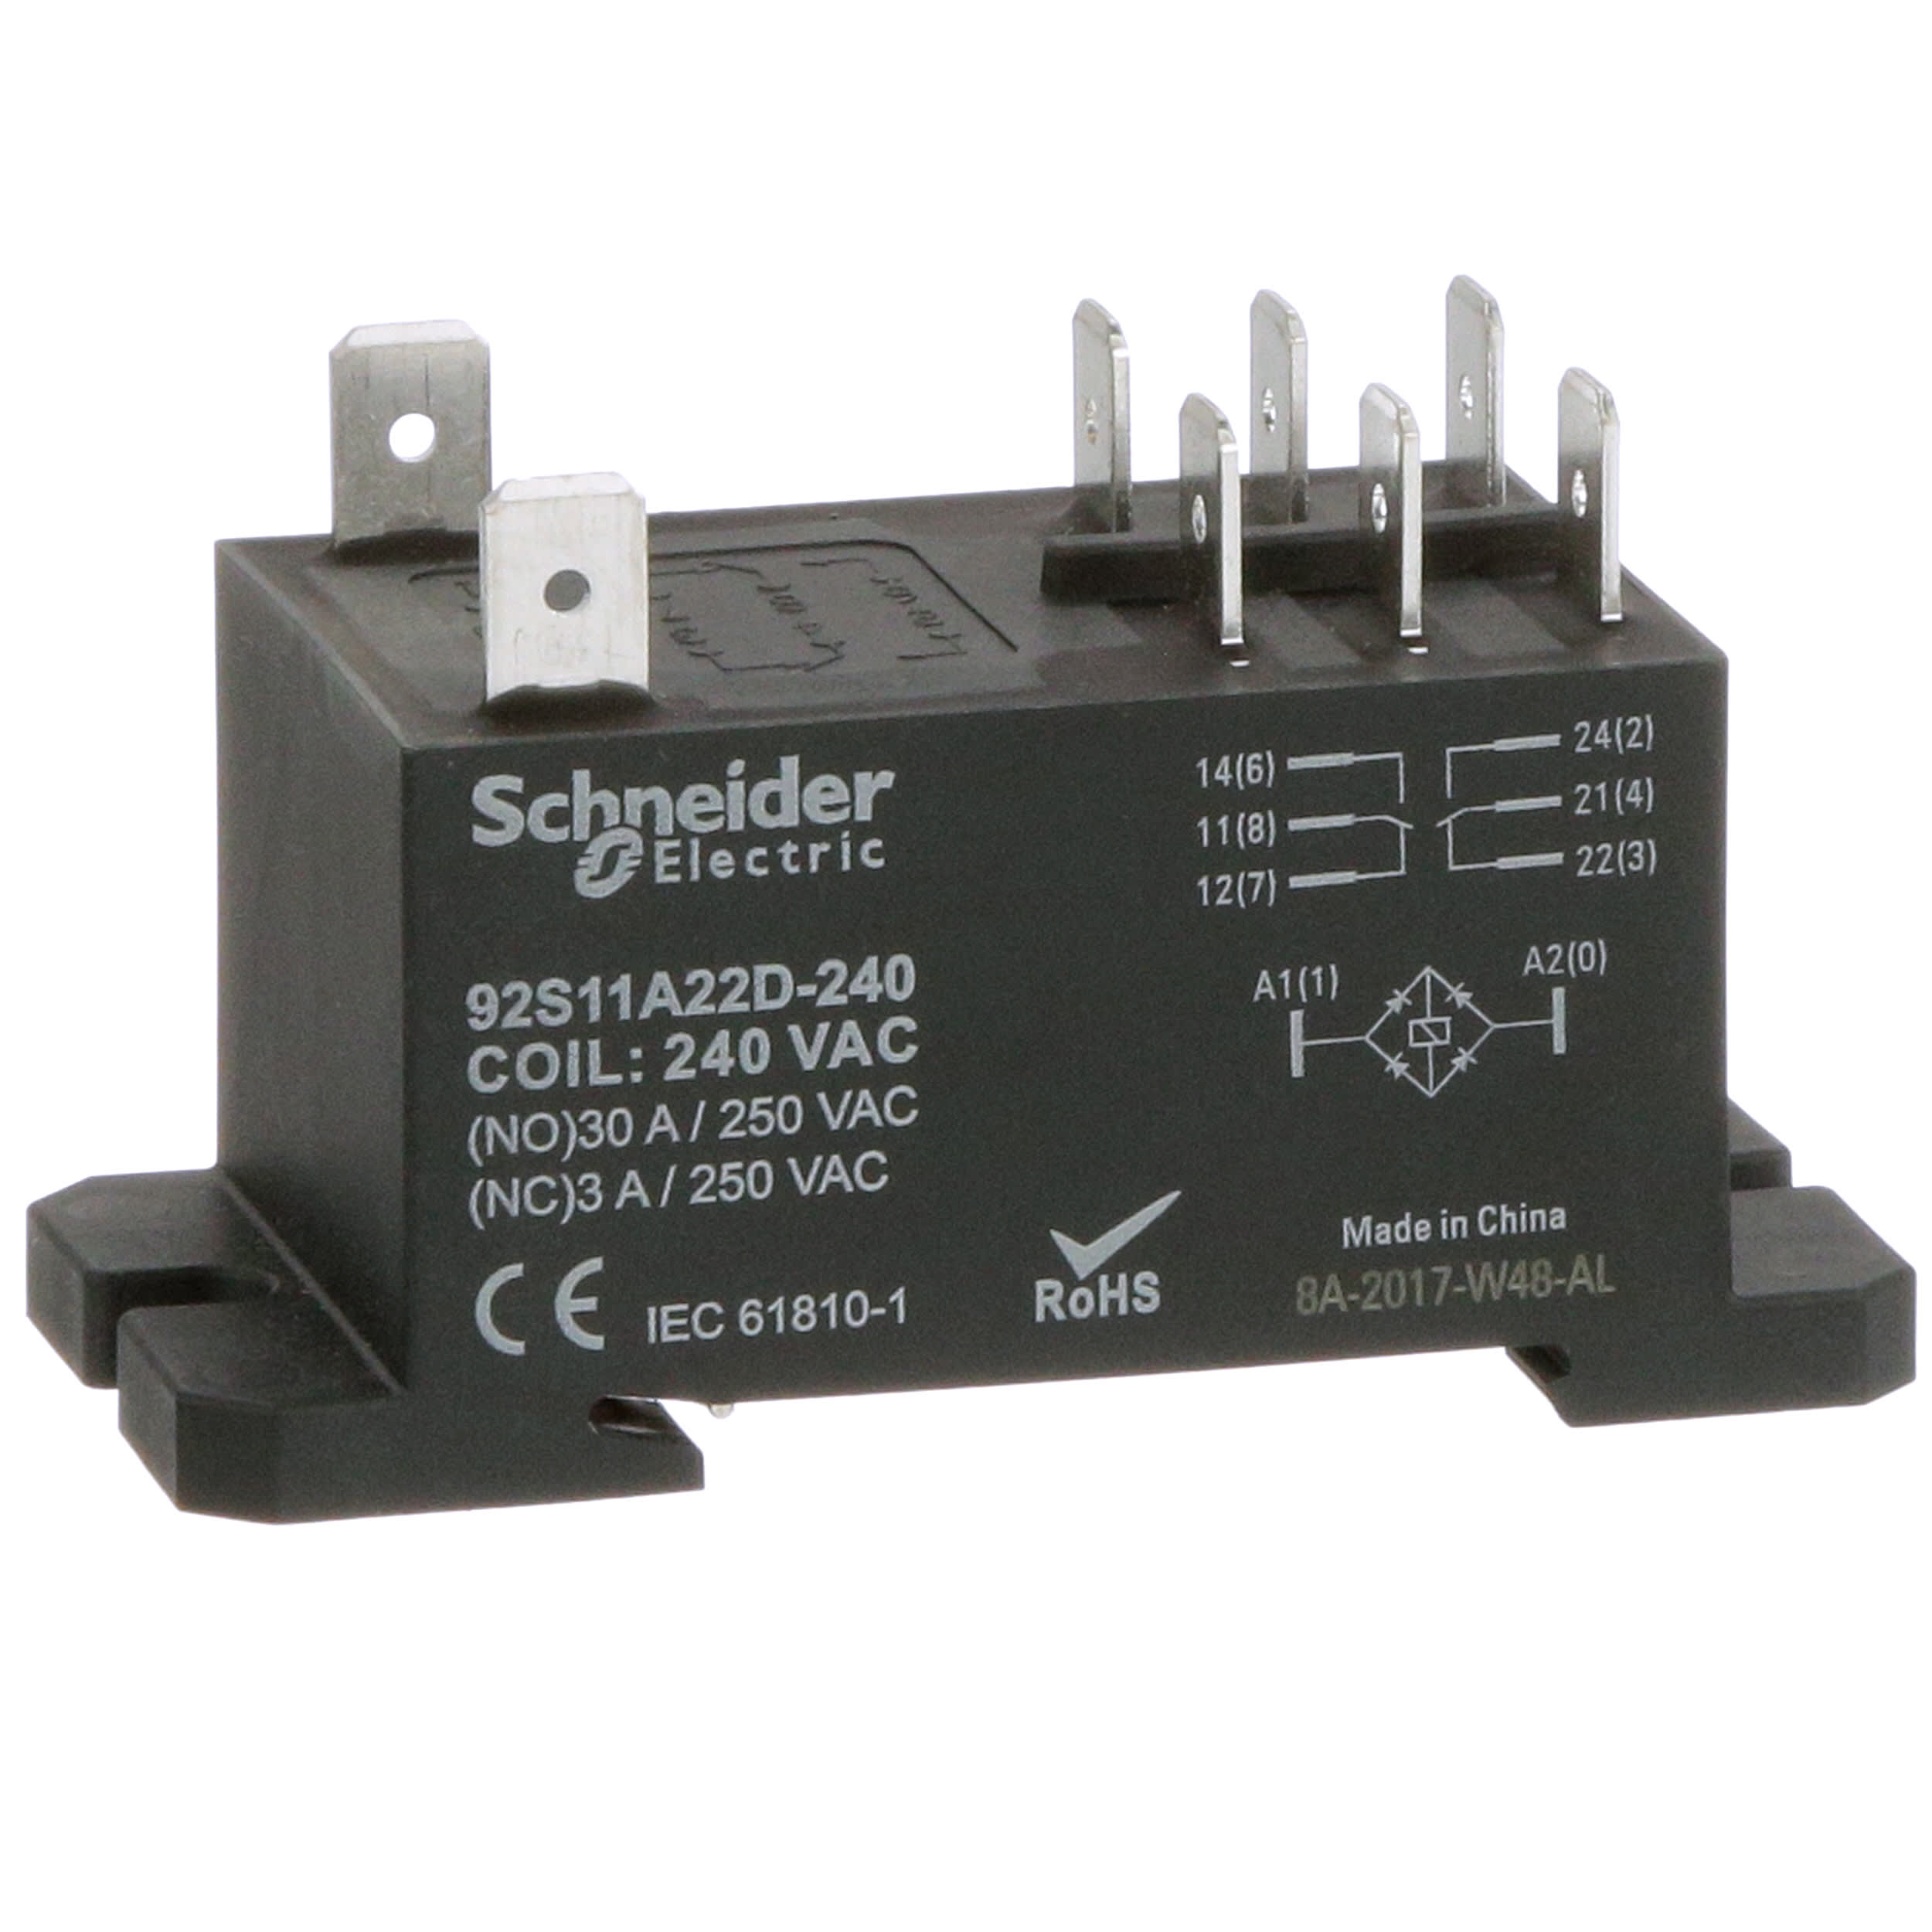 Schneider Electric Magnecraft 92s11a22d 240 Relay E Mech Power Omron G7l Dpdt Ctrl V 240ac 30a No 3a Nc 300v Panel Mnt Qc Term Allied Electronics